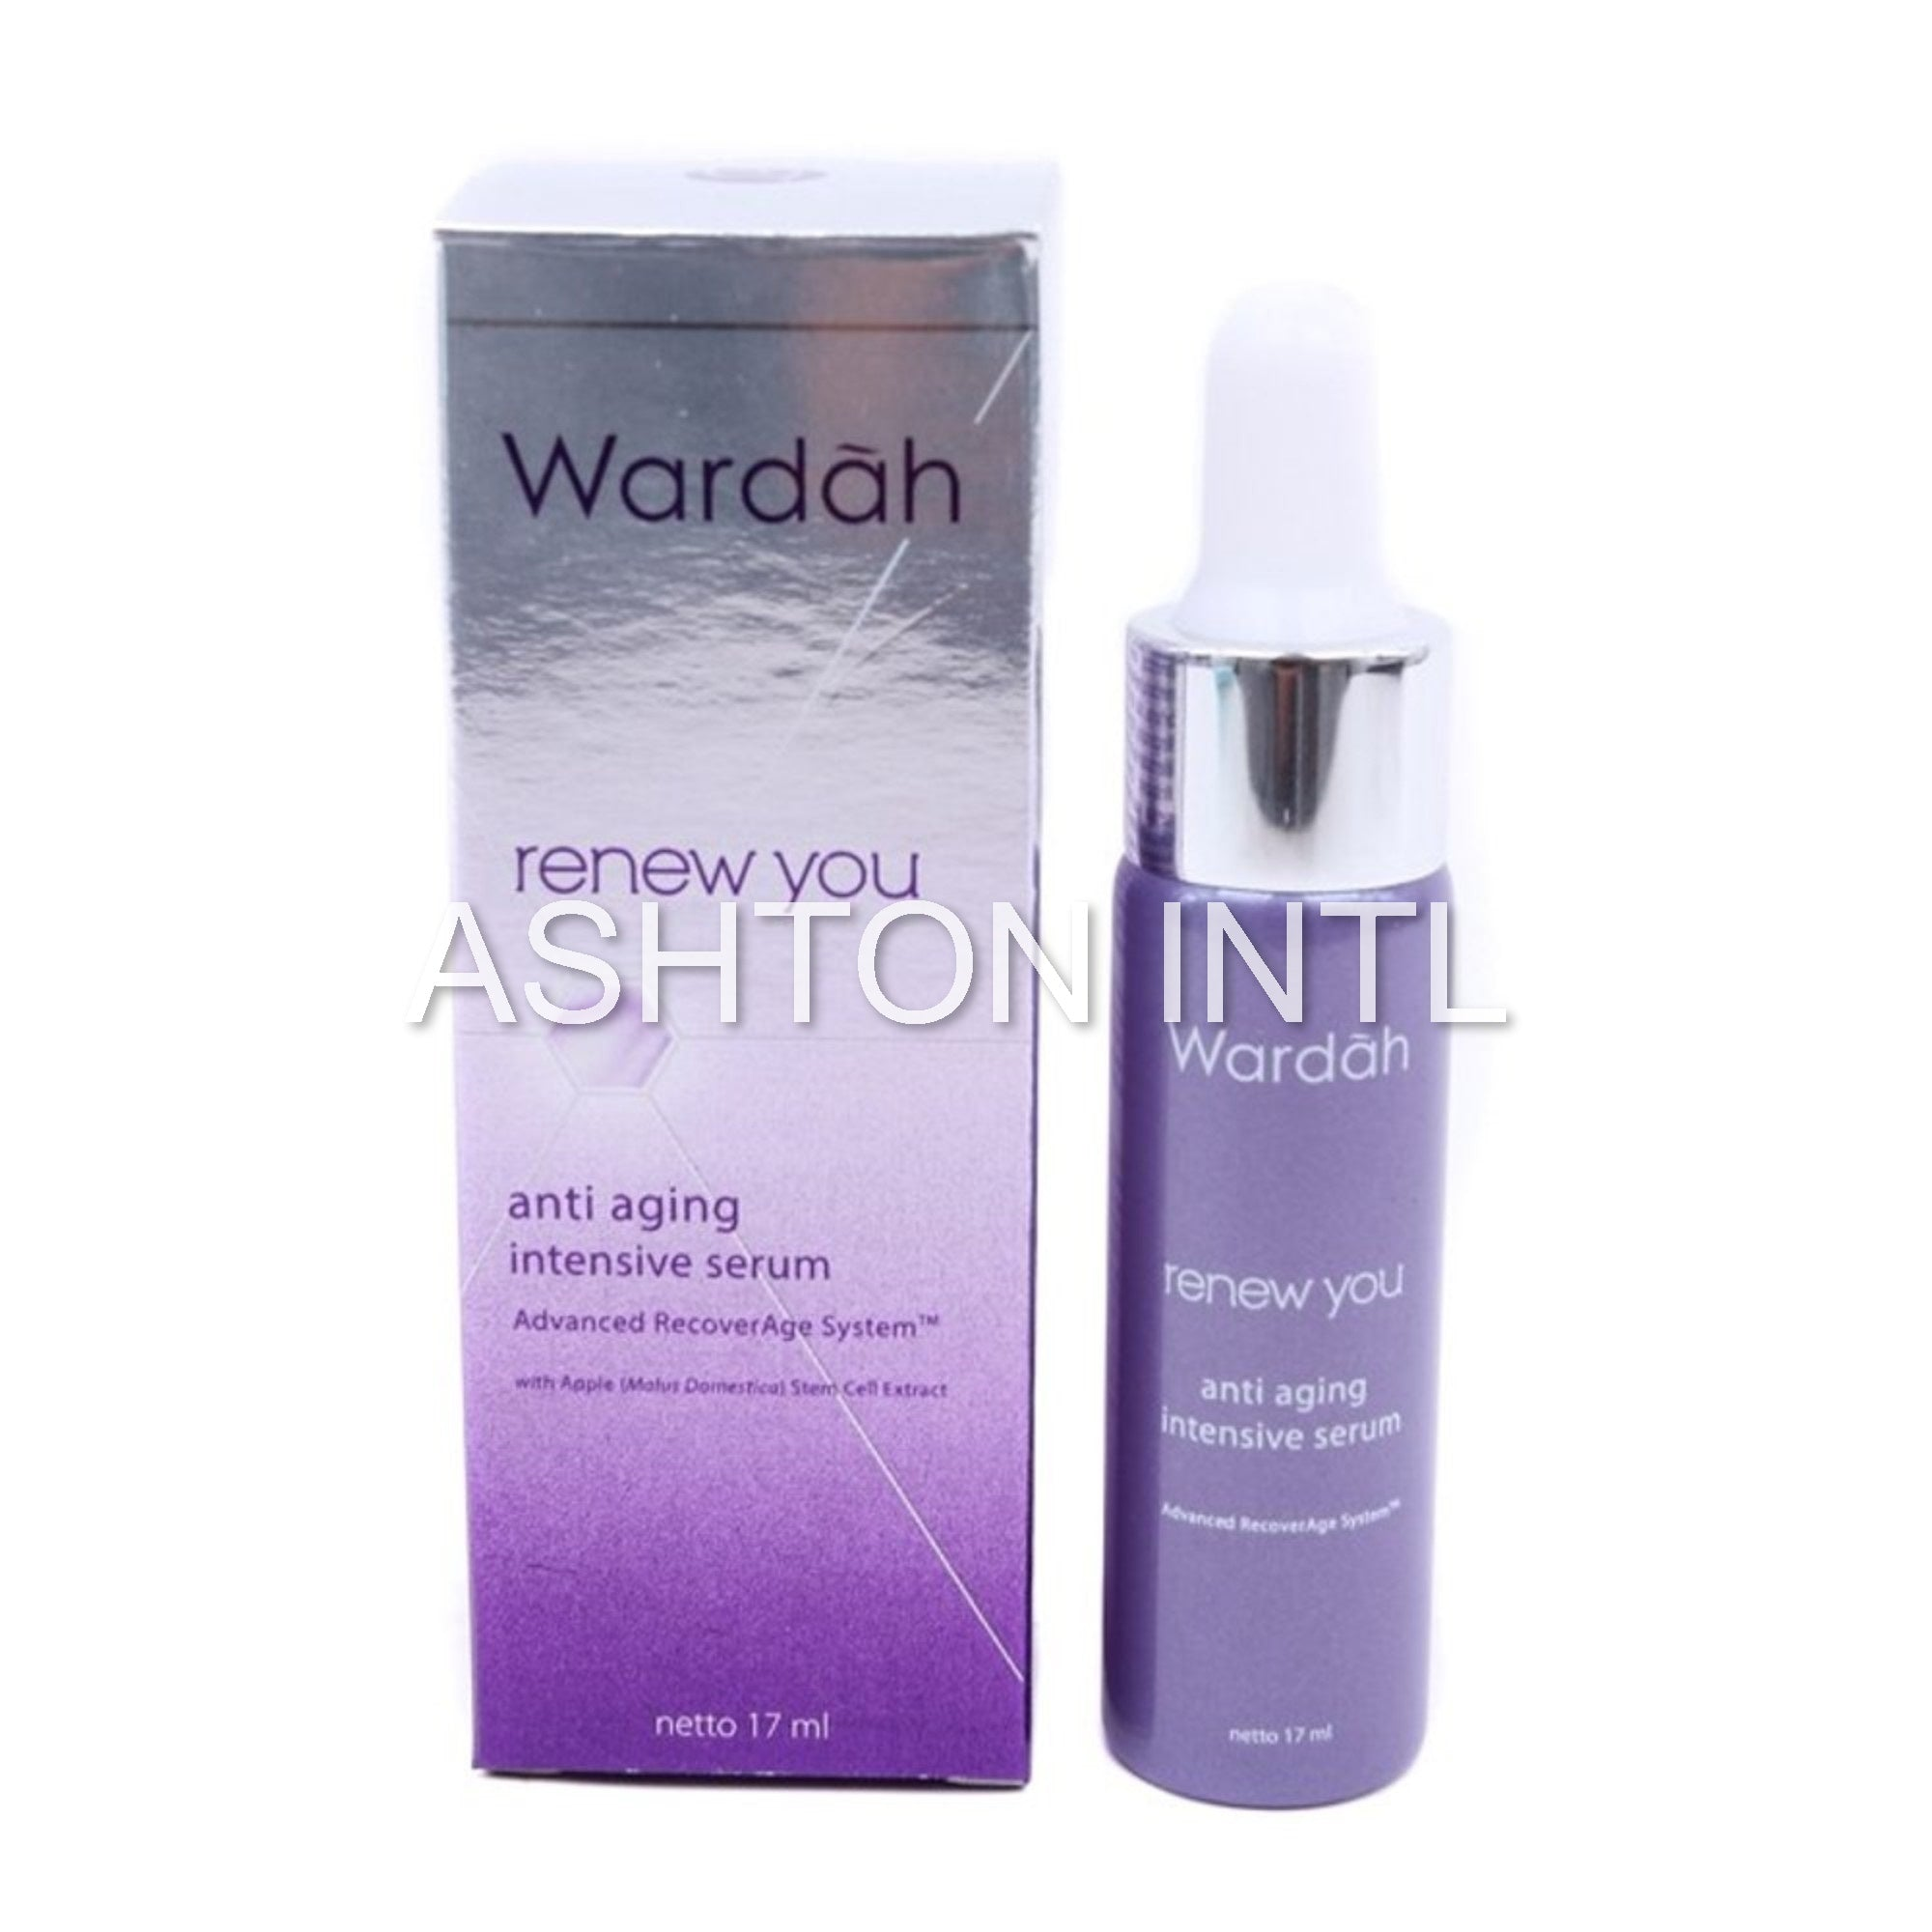 Wardah Renew You Anti Aging Intensive Serum with Apple Stem Cell Extract 17ml